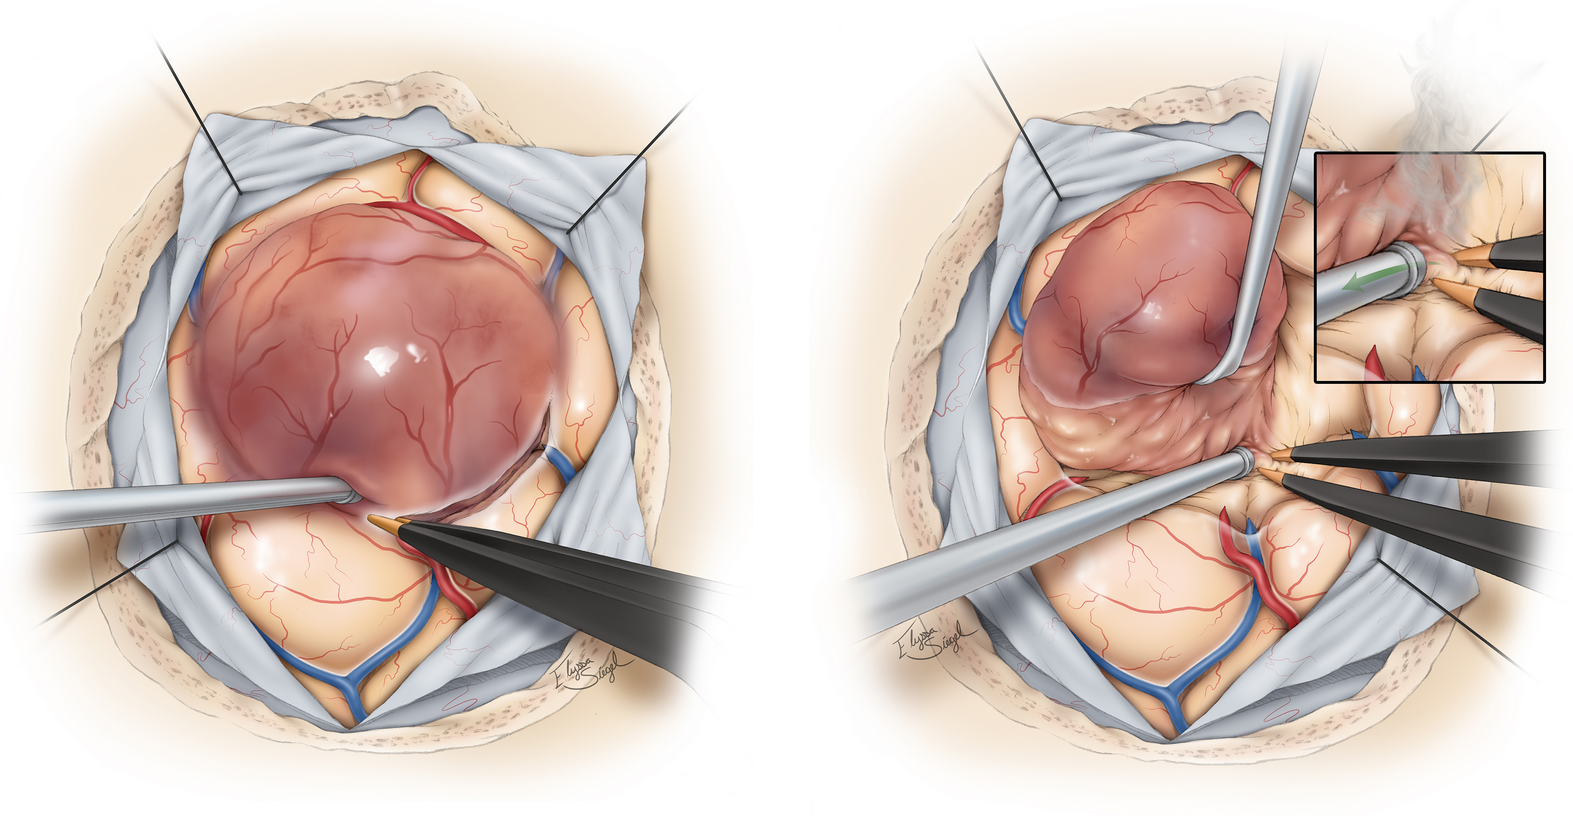 Figure 3. Surgical removal of a high-grade glioma. The tumor is carefully dissected from the surrounding tissues.